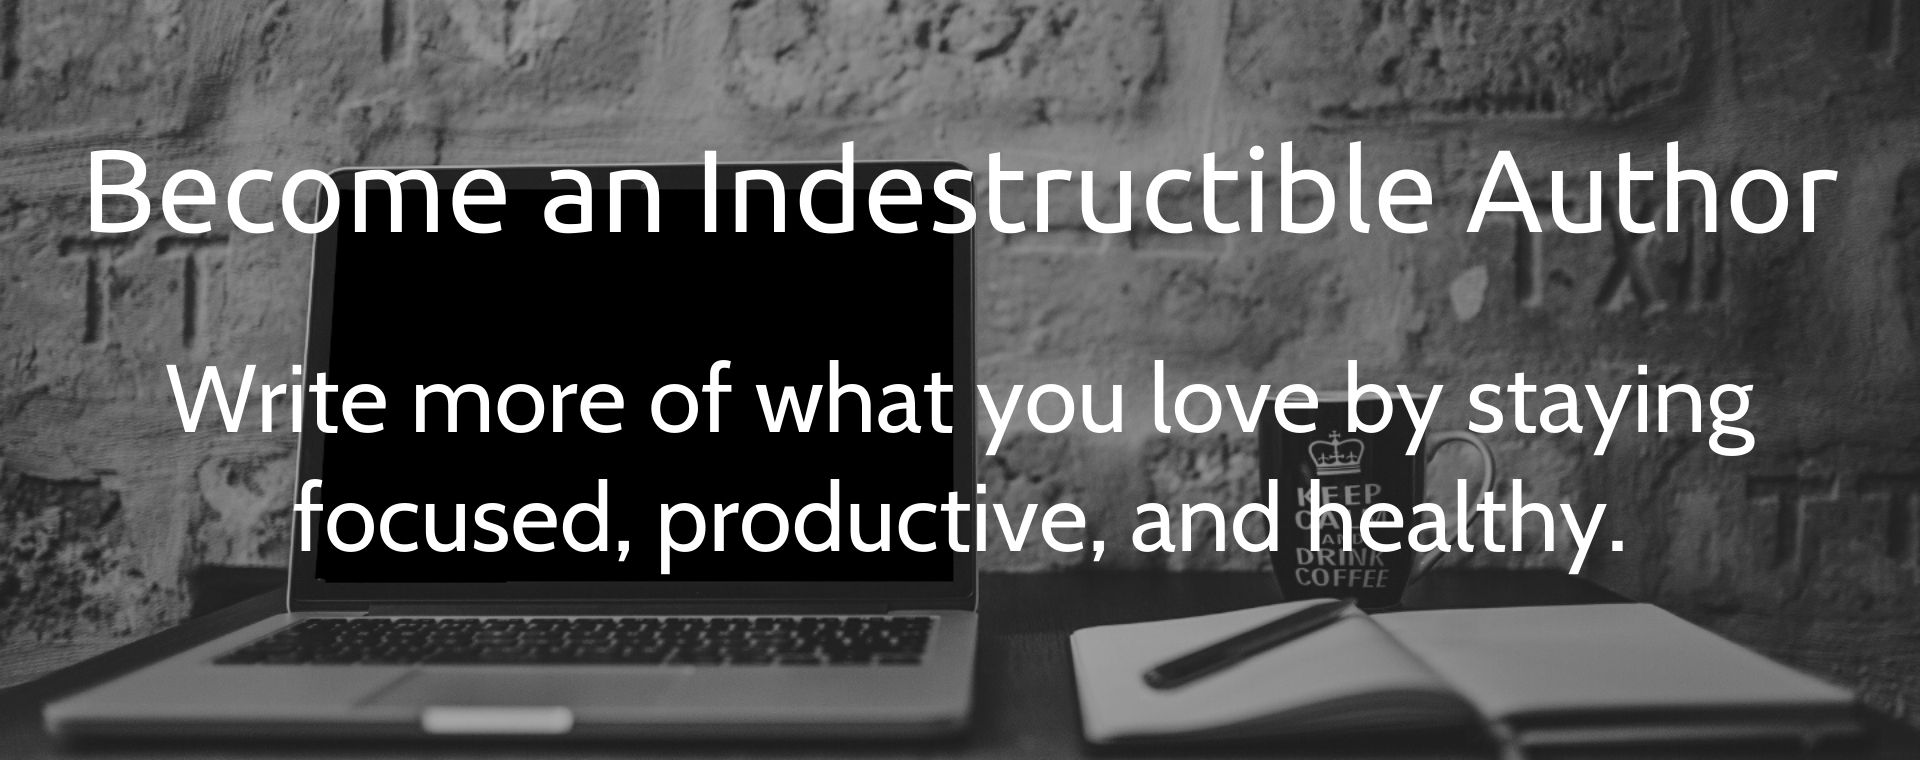 Become an Indestructible Author site banner 1920x760